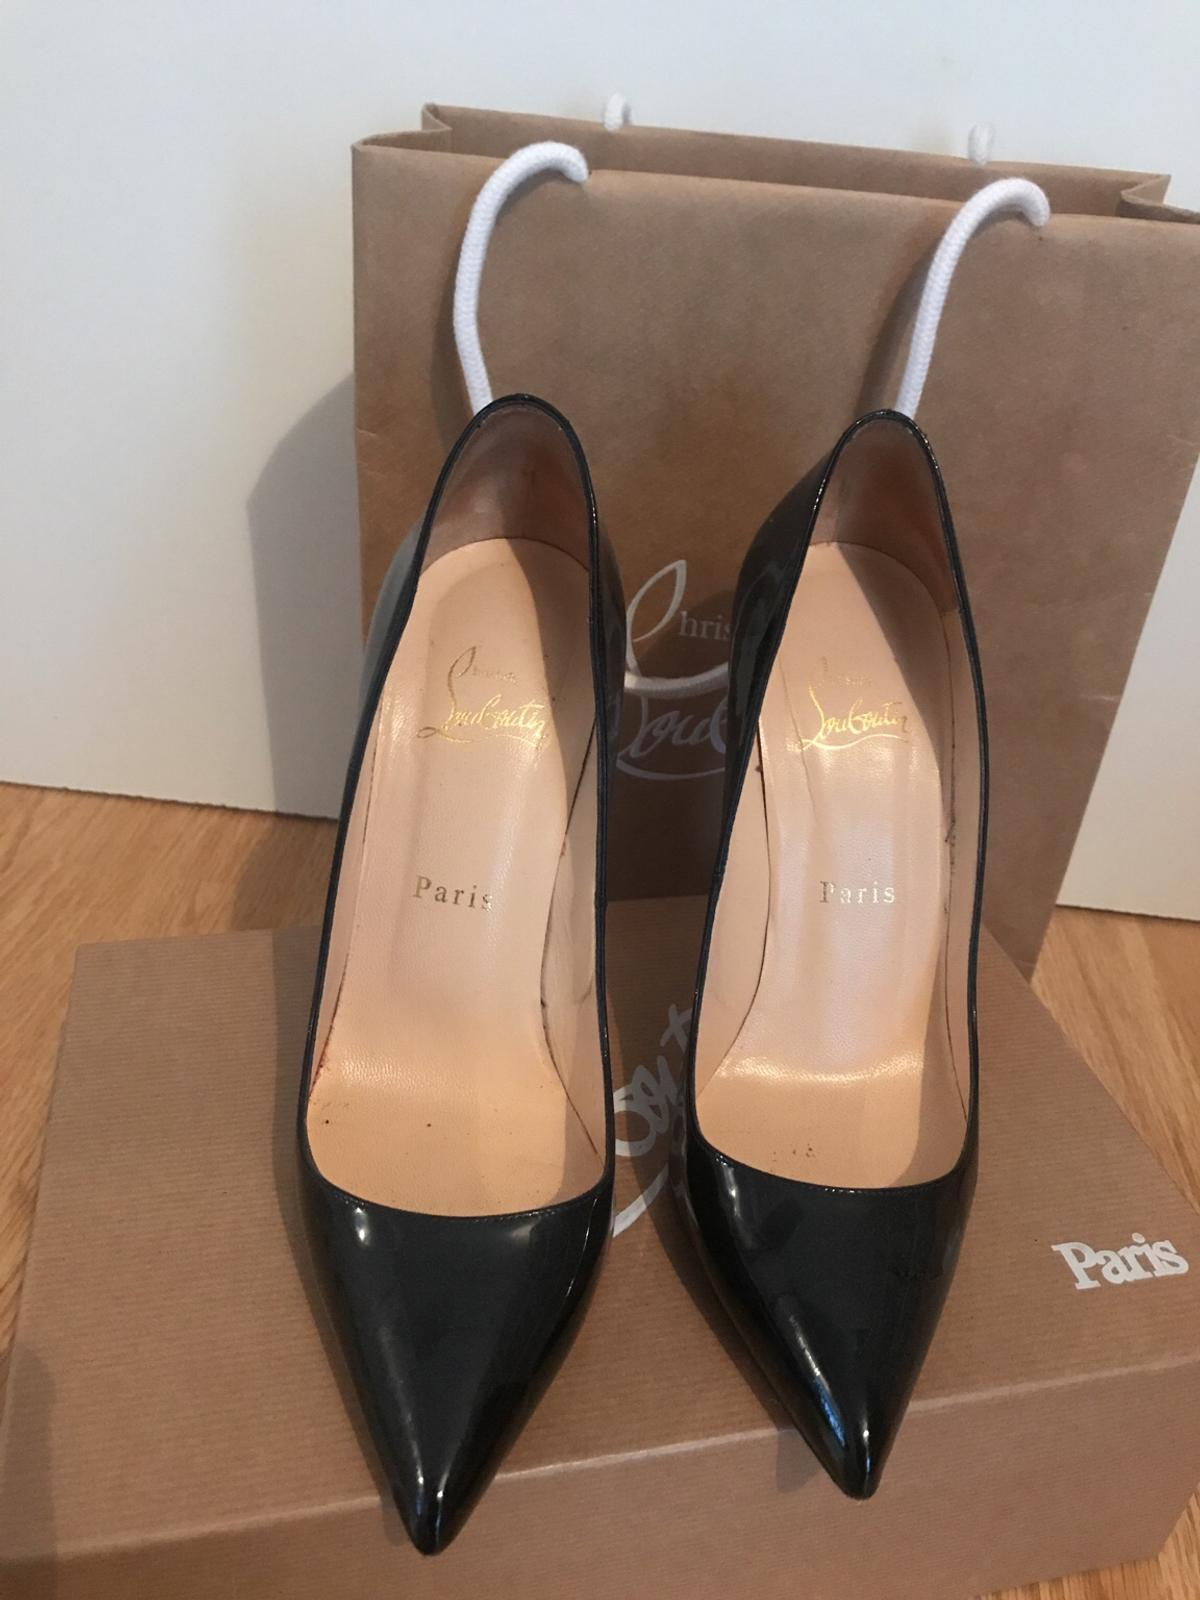 3797c466973 Louboutins Size 5 in Bolton for £150.00 for sale - Shpock